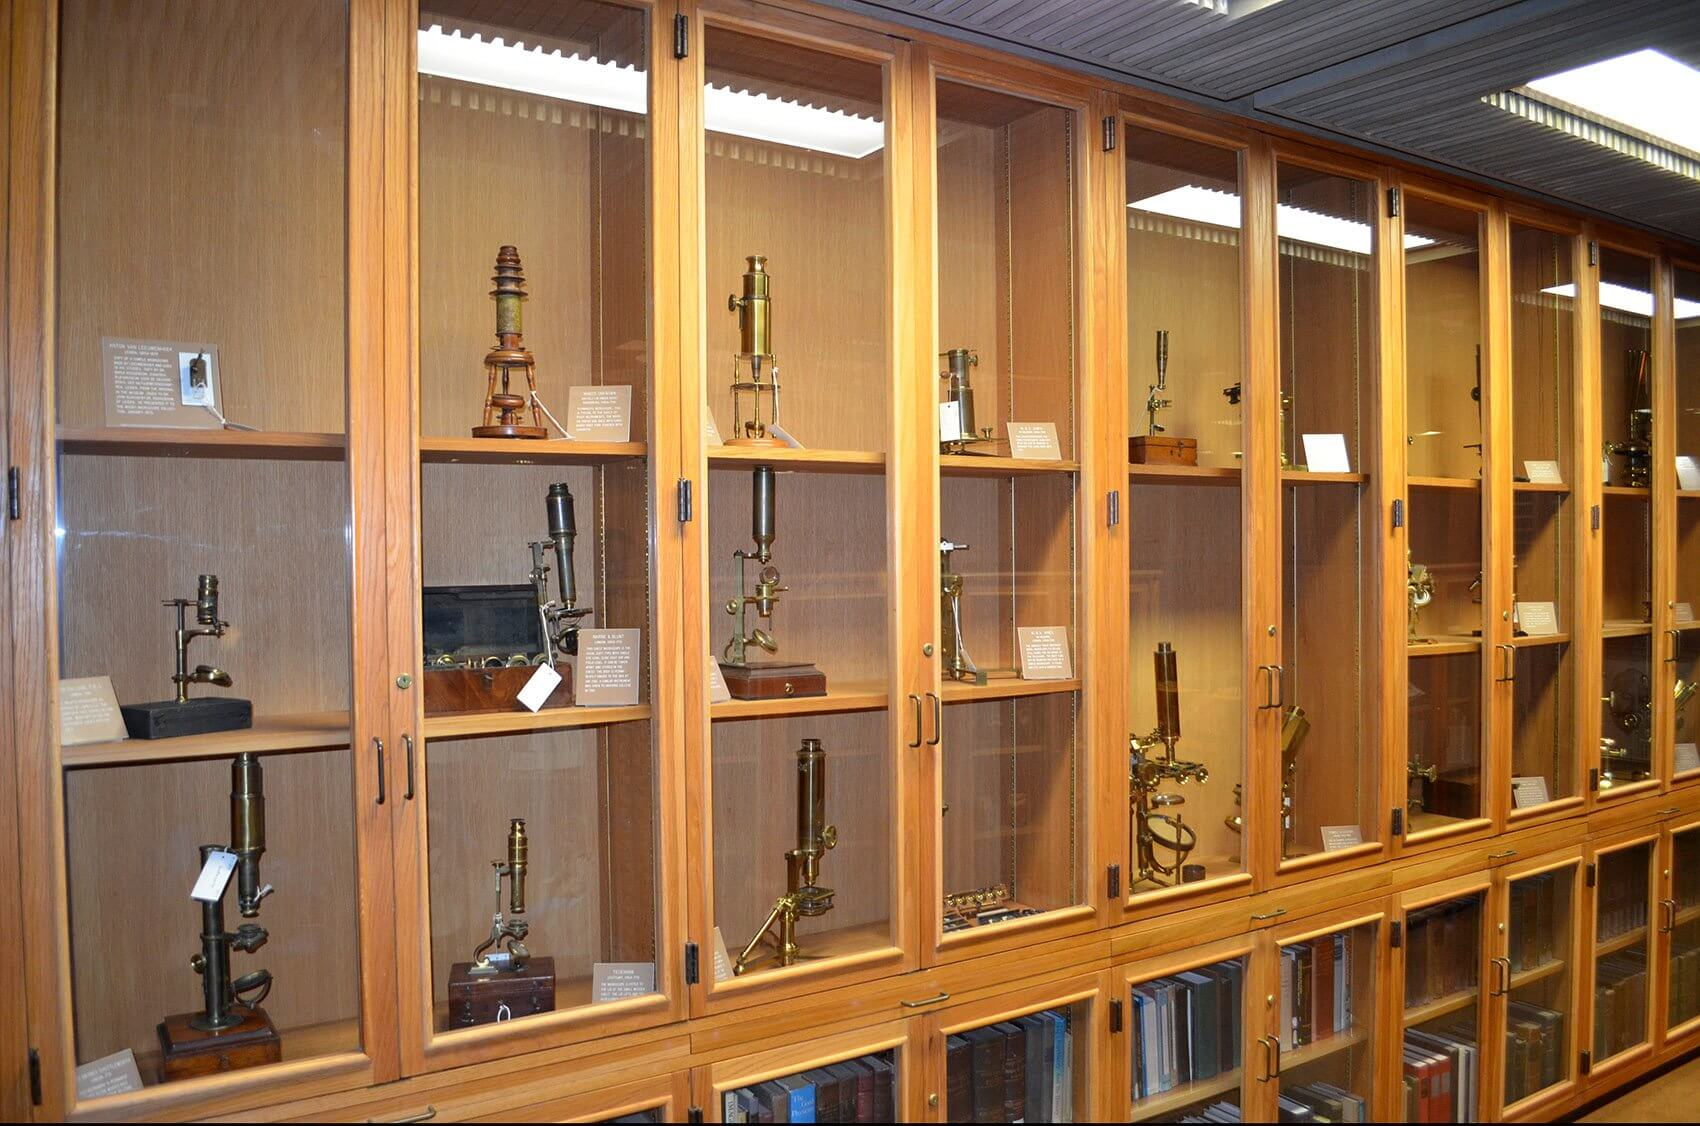 Microscope Collection, Truman G. Blocker, Jr. History of Medicine Collections